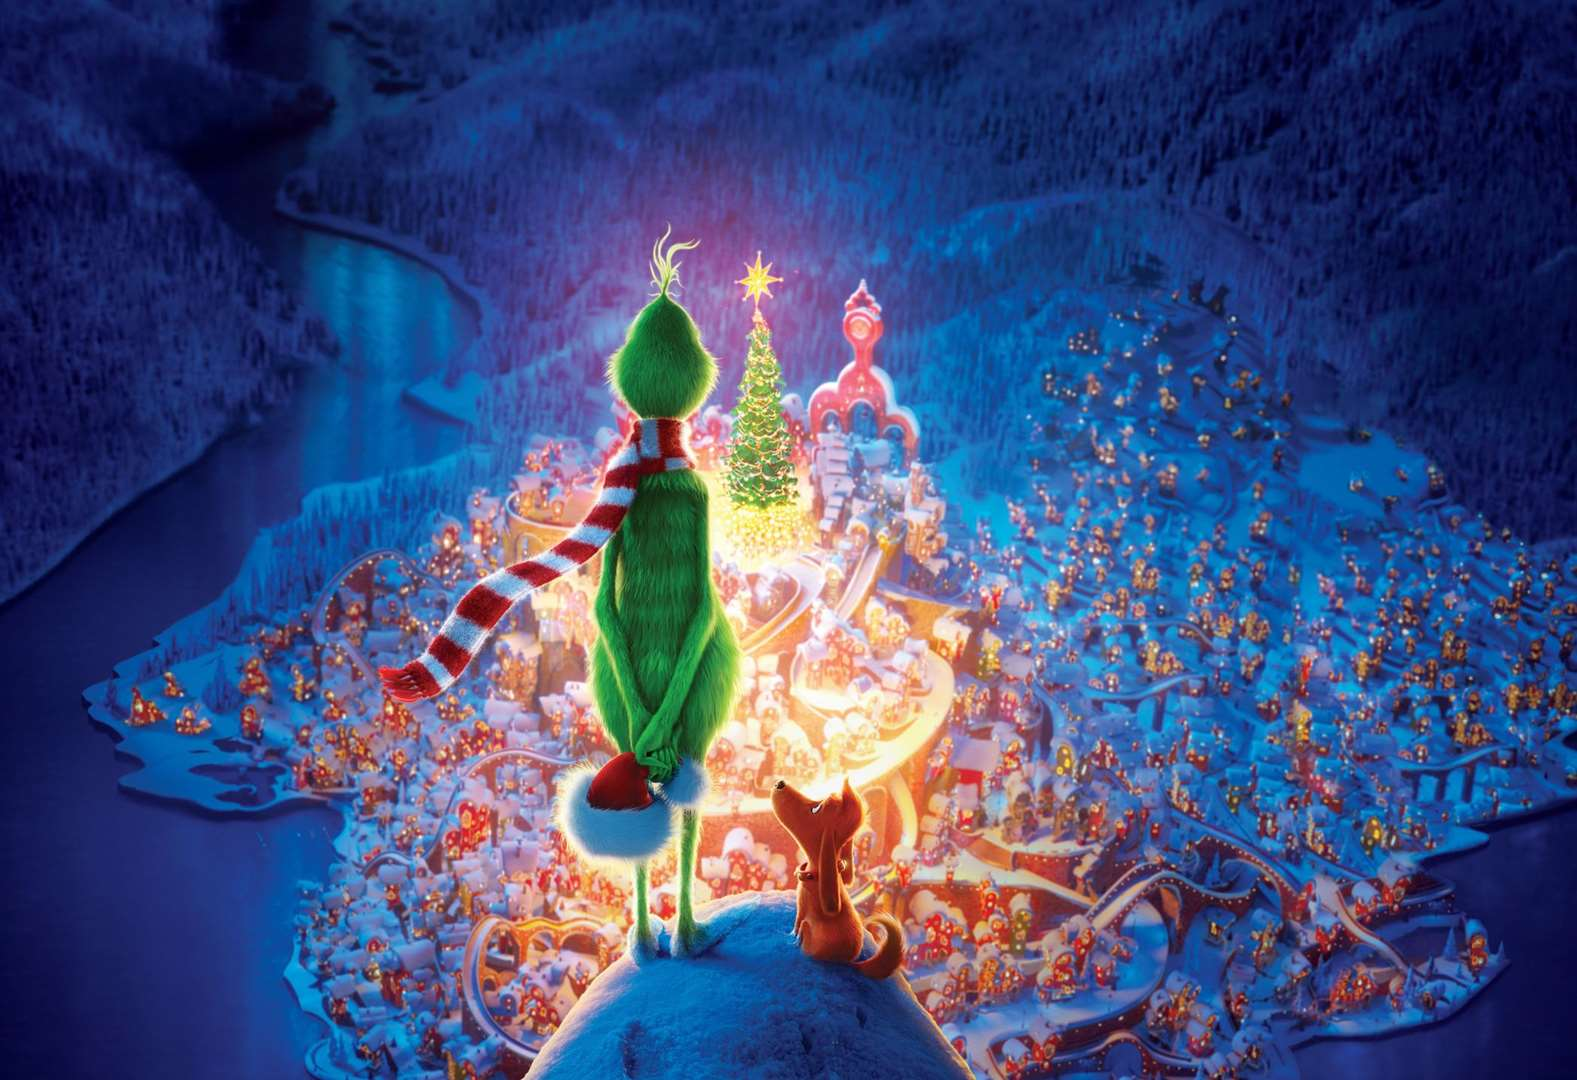 FILM REVIEW: THE GRINCH (U)